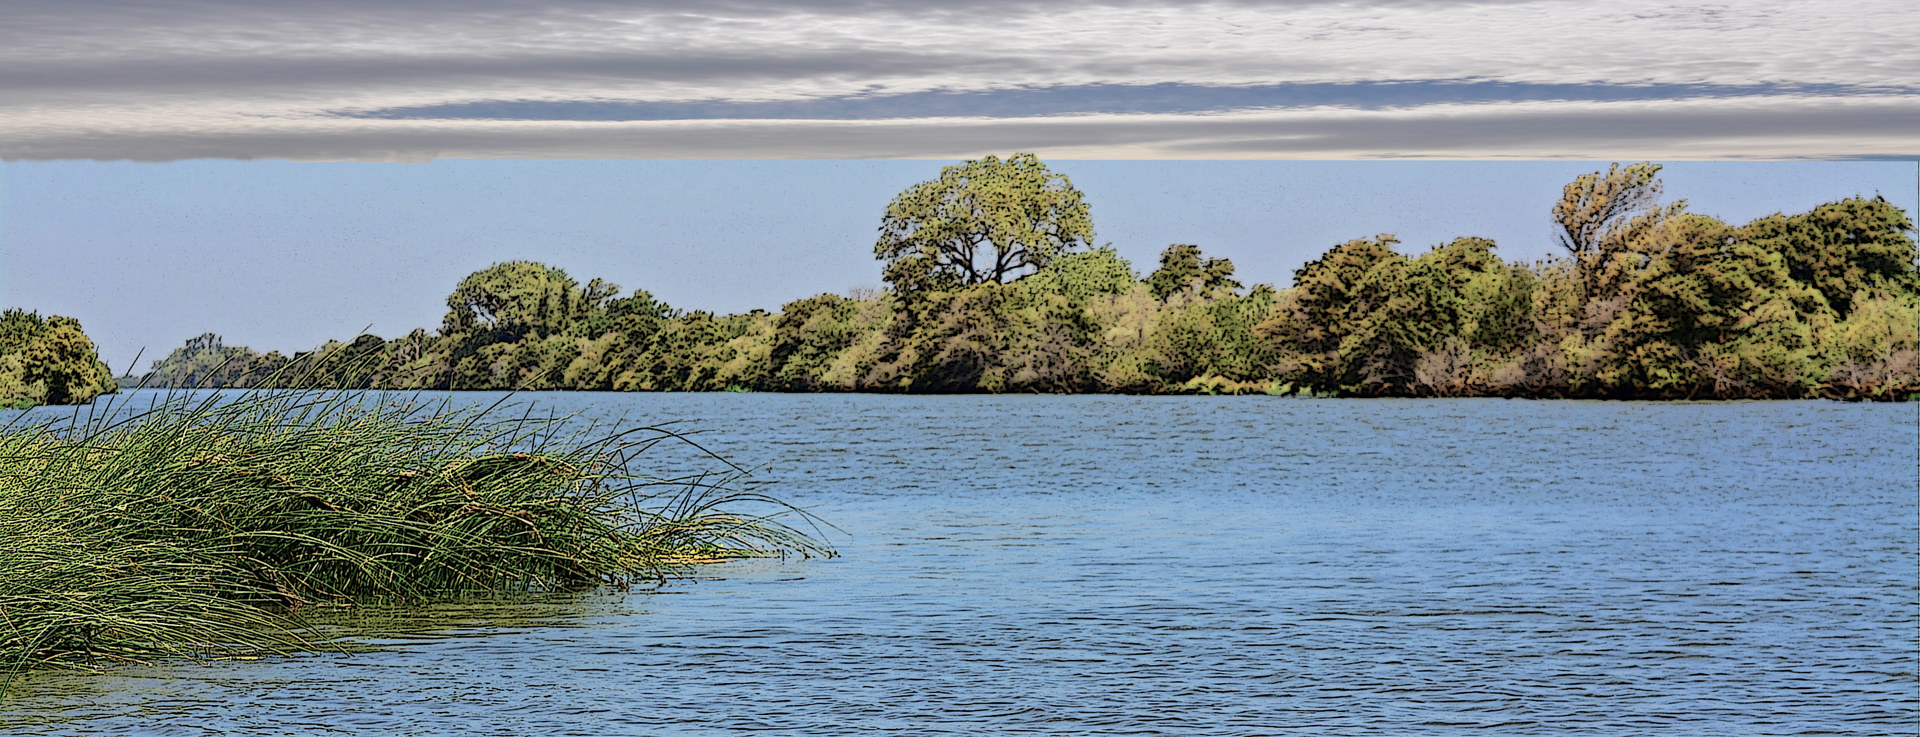 SACRAMENTO RIVER RIO VISTA by Joeann Edmonds-Matthew